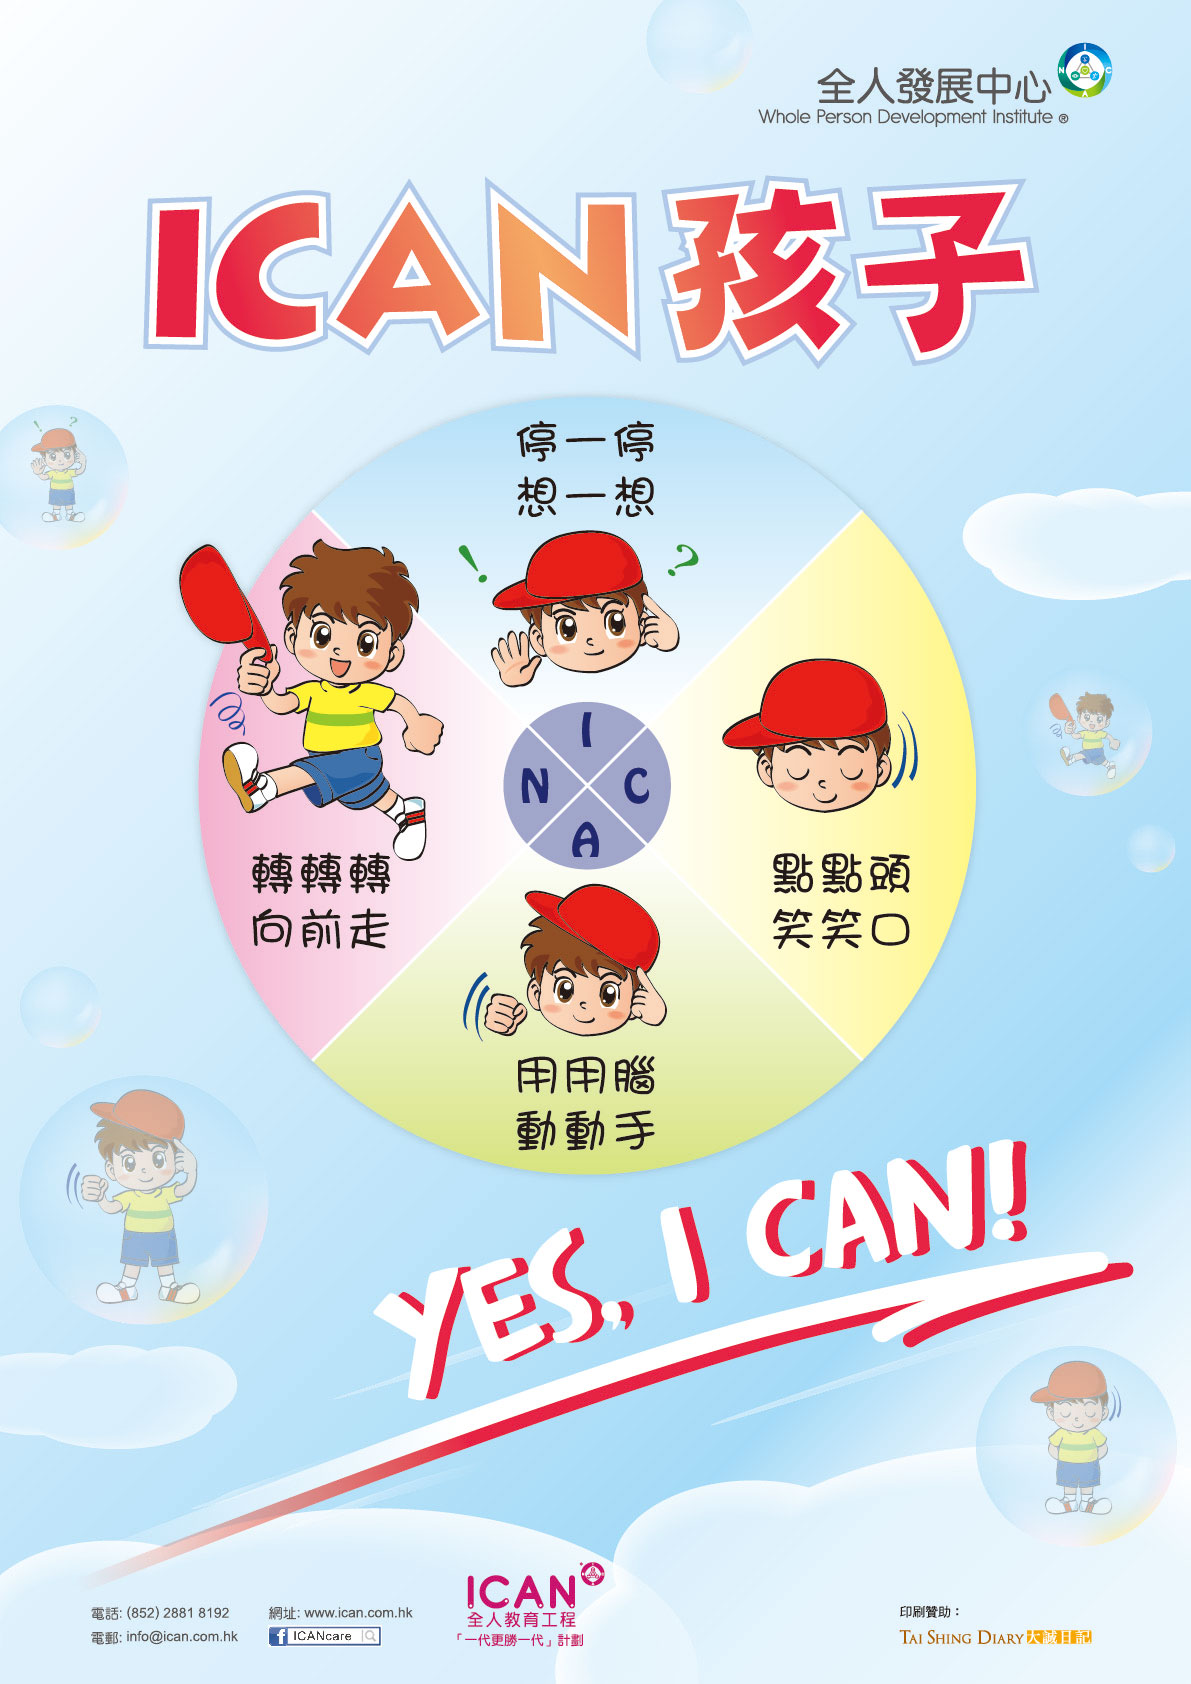 a2poster_yesican_OP_02092014_low-01